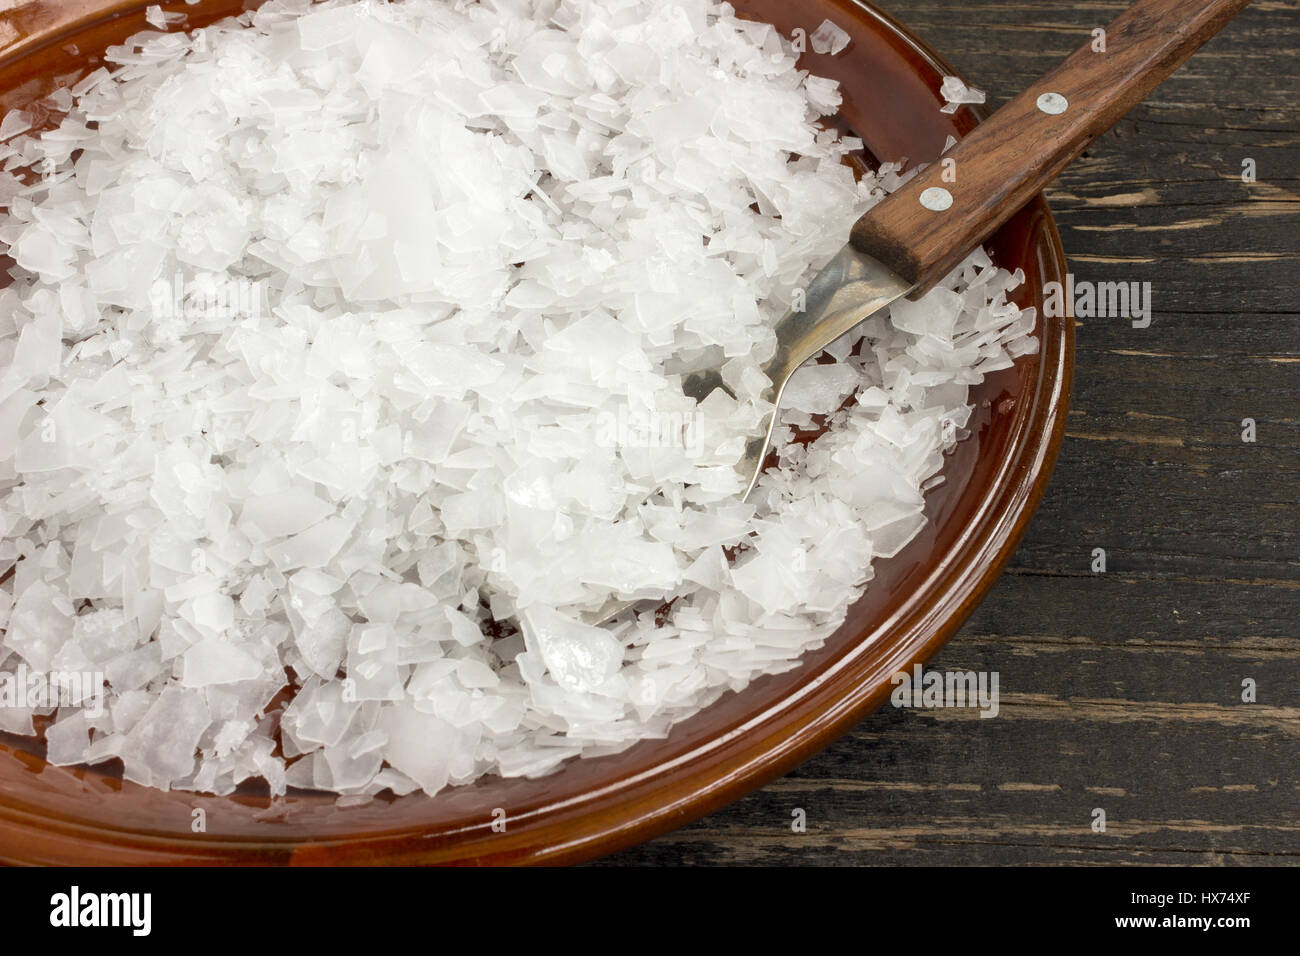 Magnesium chloride flakes, full saucer and spoon - Stock Image